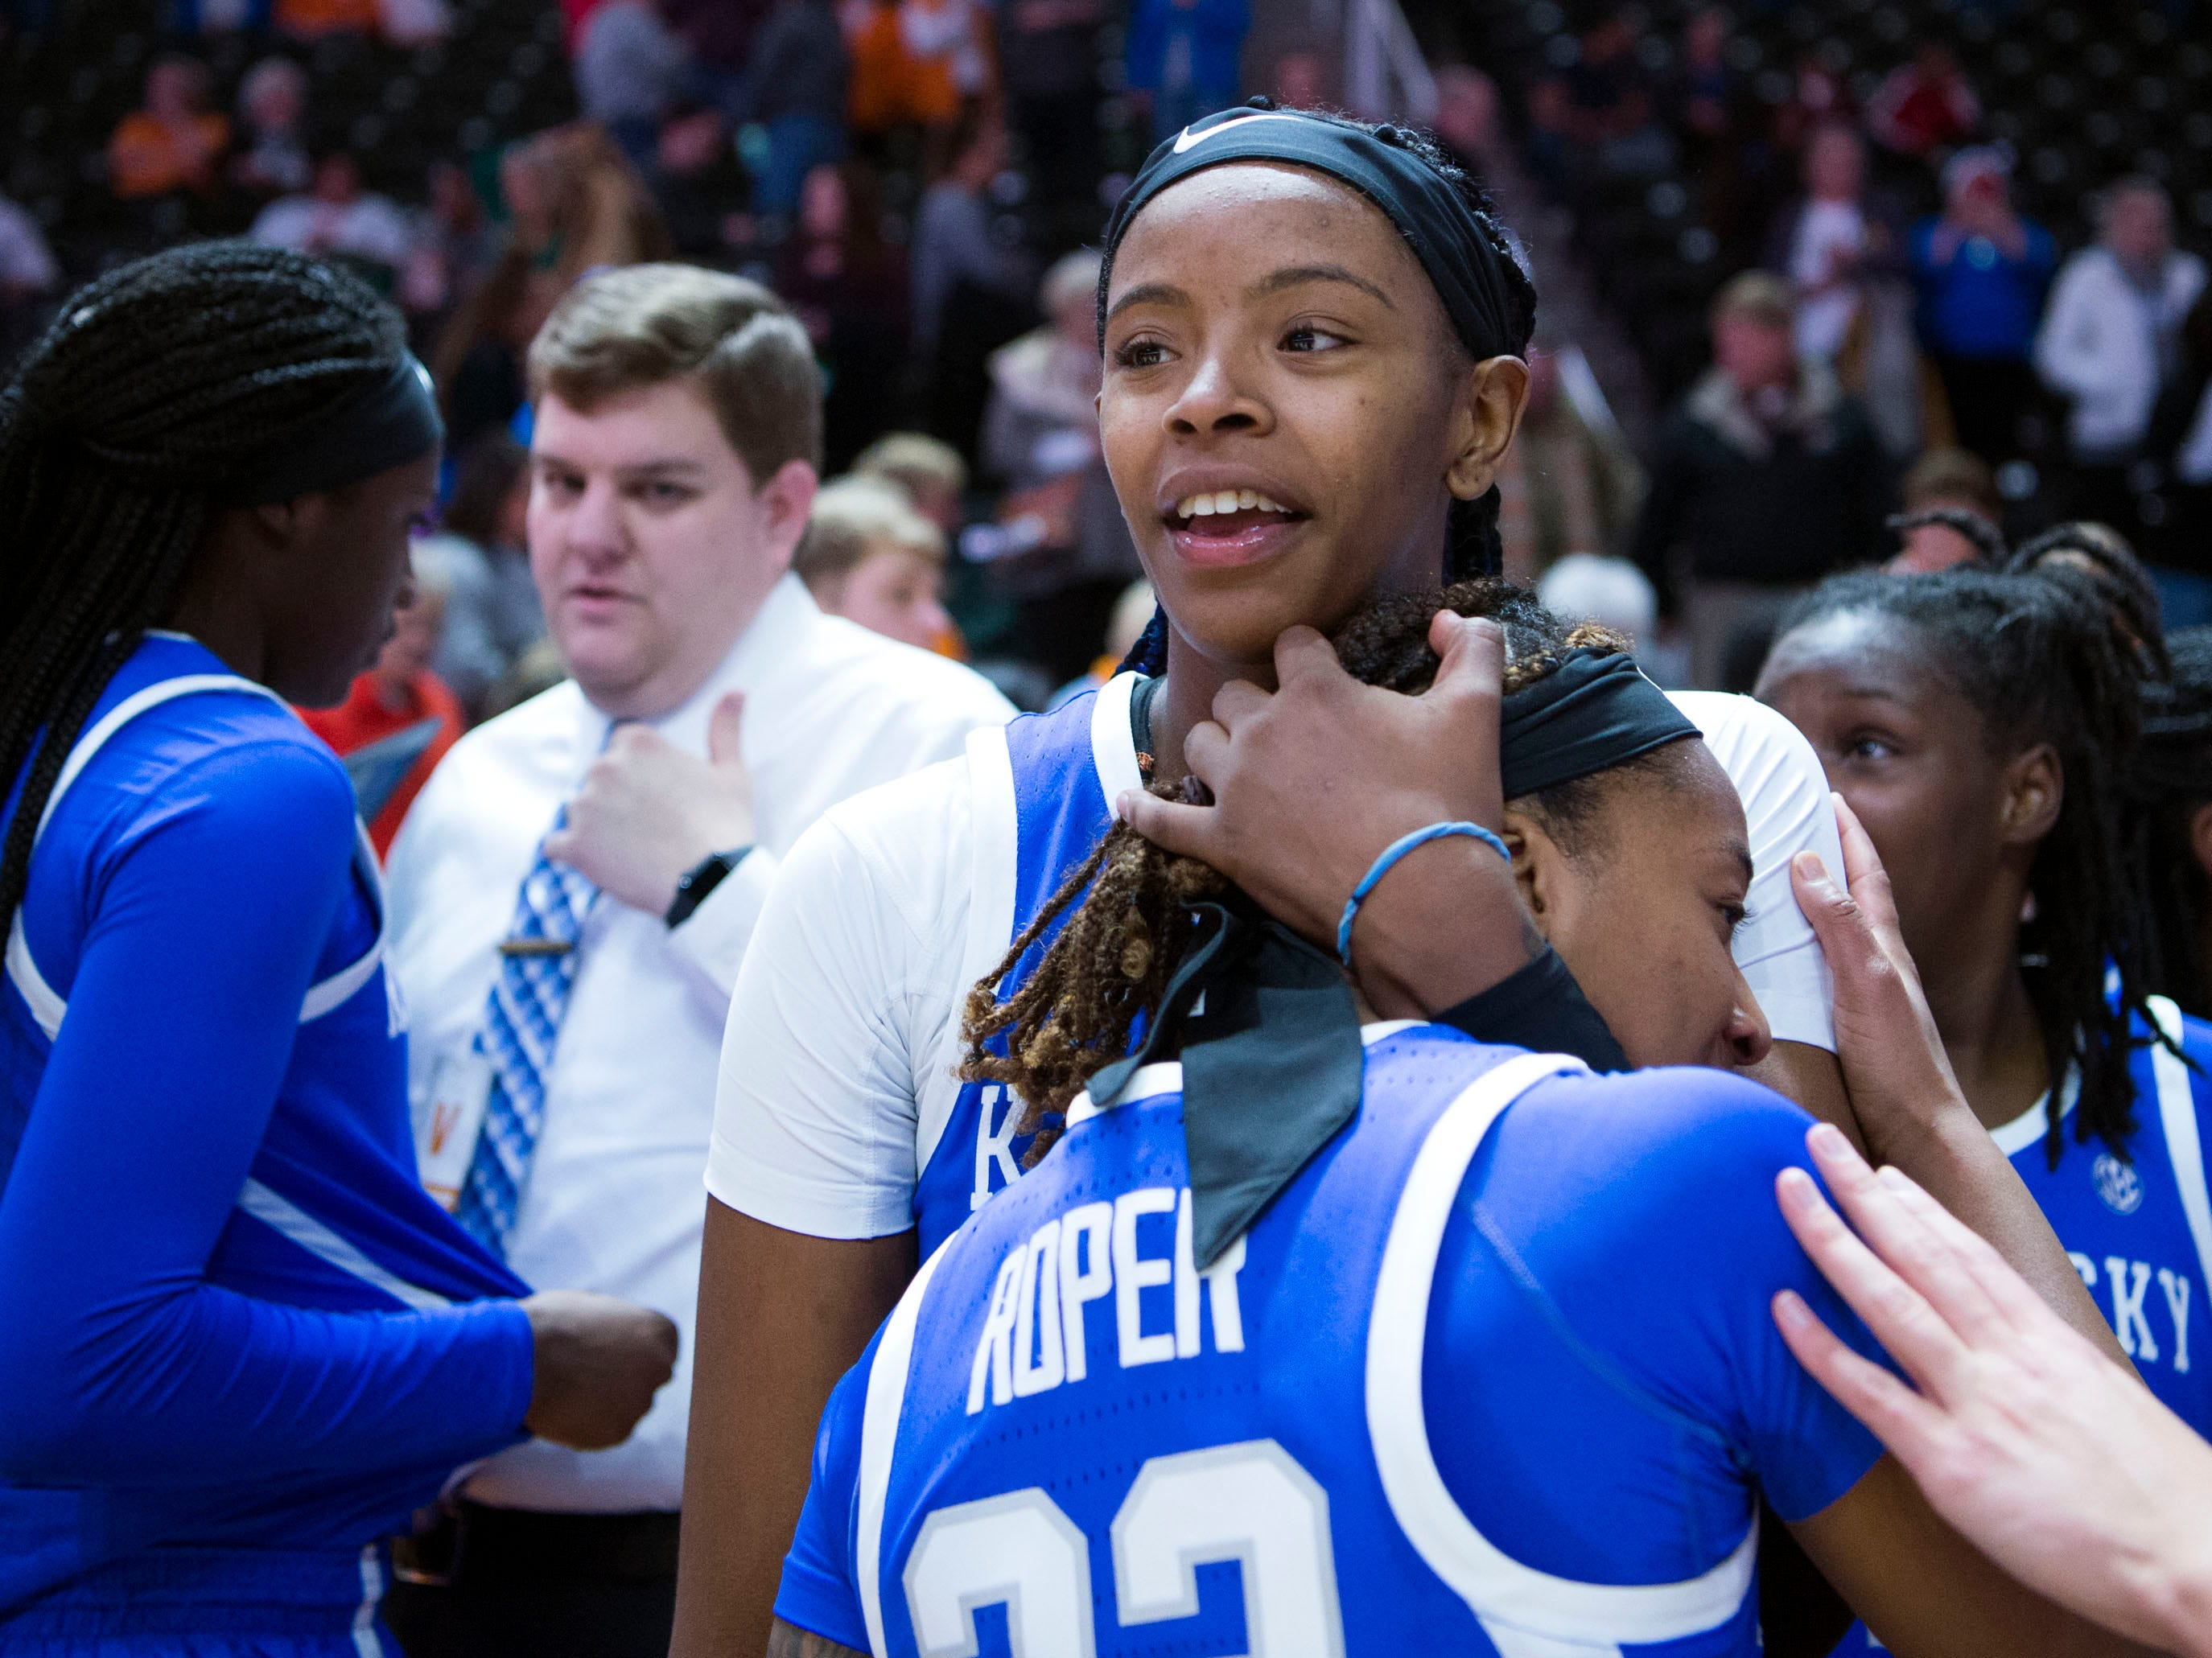 Kentucky's KeKe McKinney (3) celebrates the 73-71 victory over Tennessee with Jaida Roper (32) on Thursday, January 10, 2019.